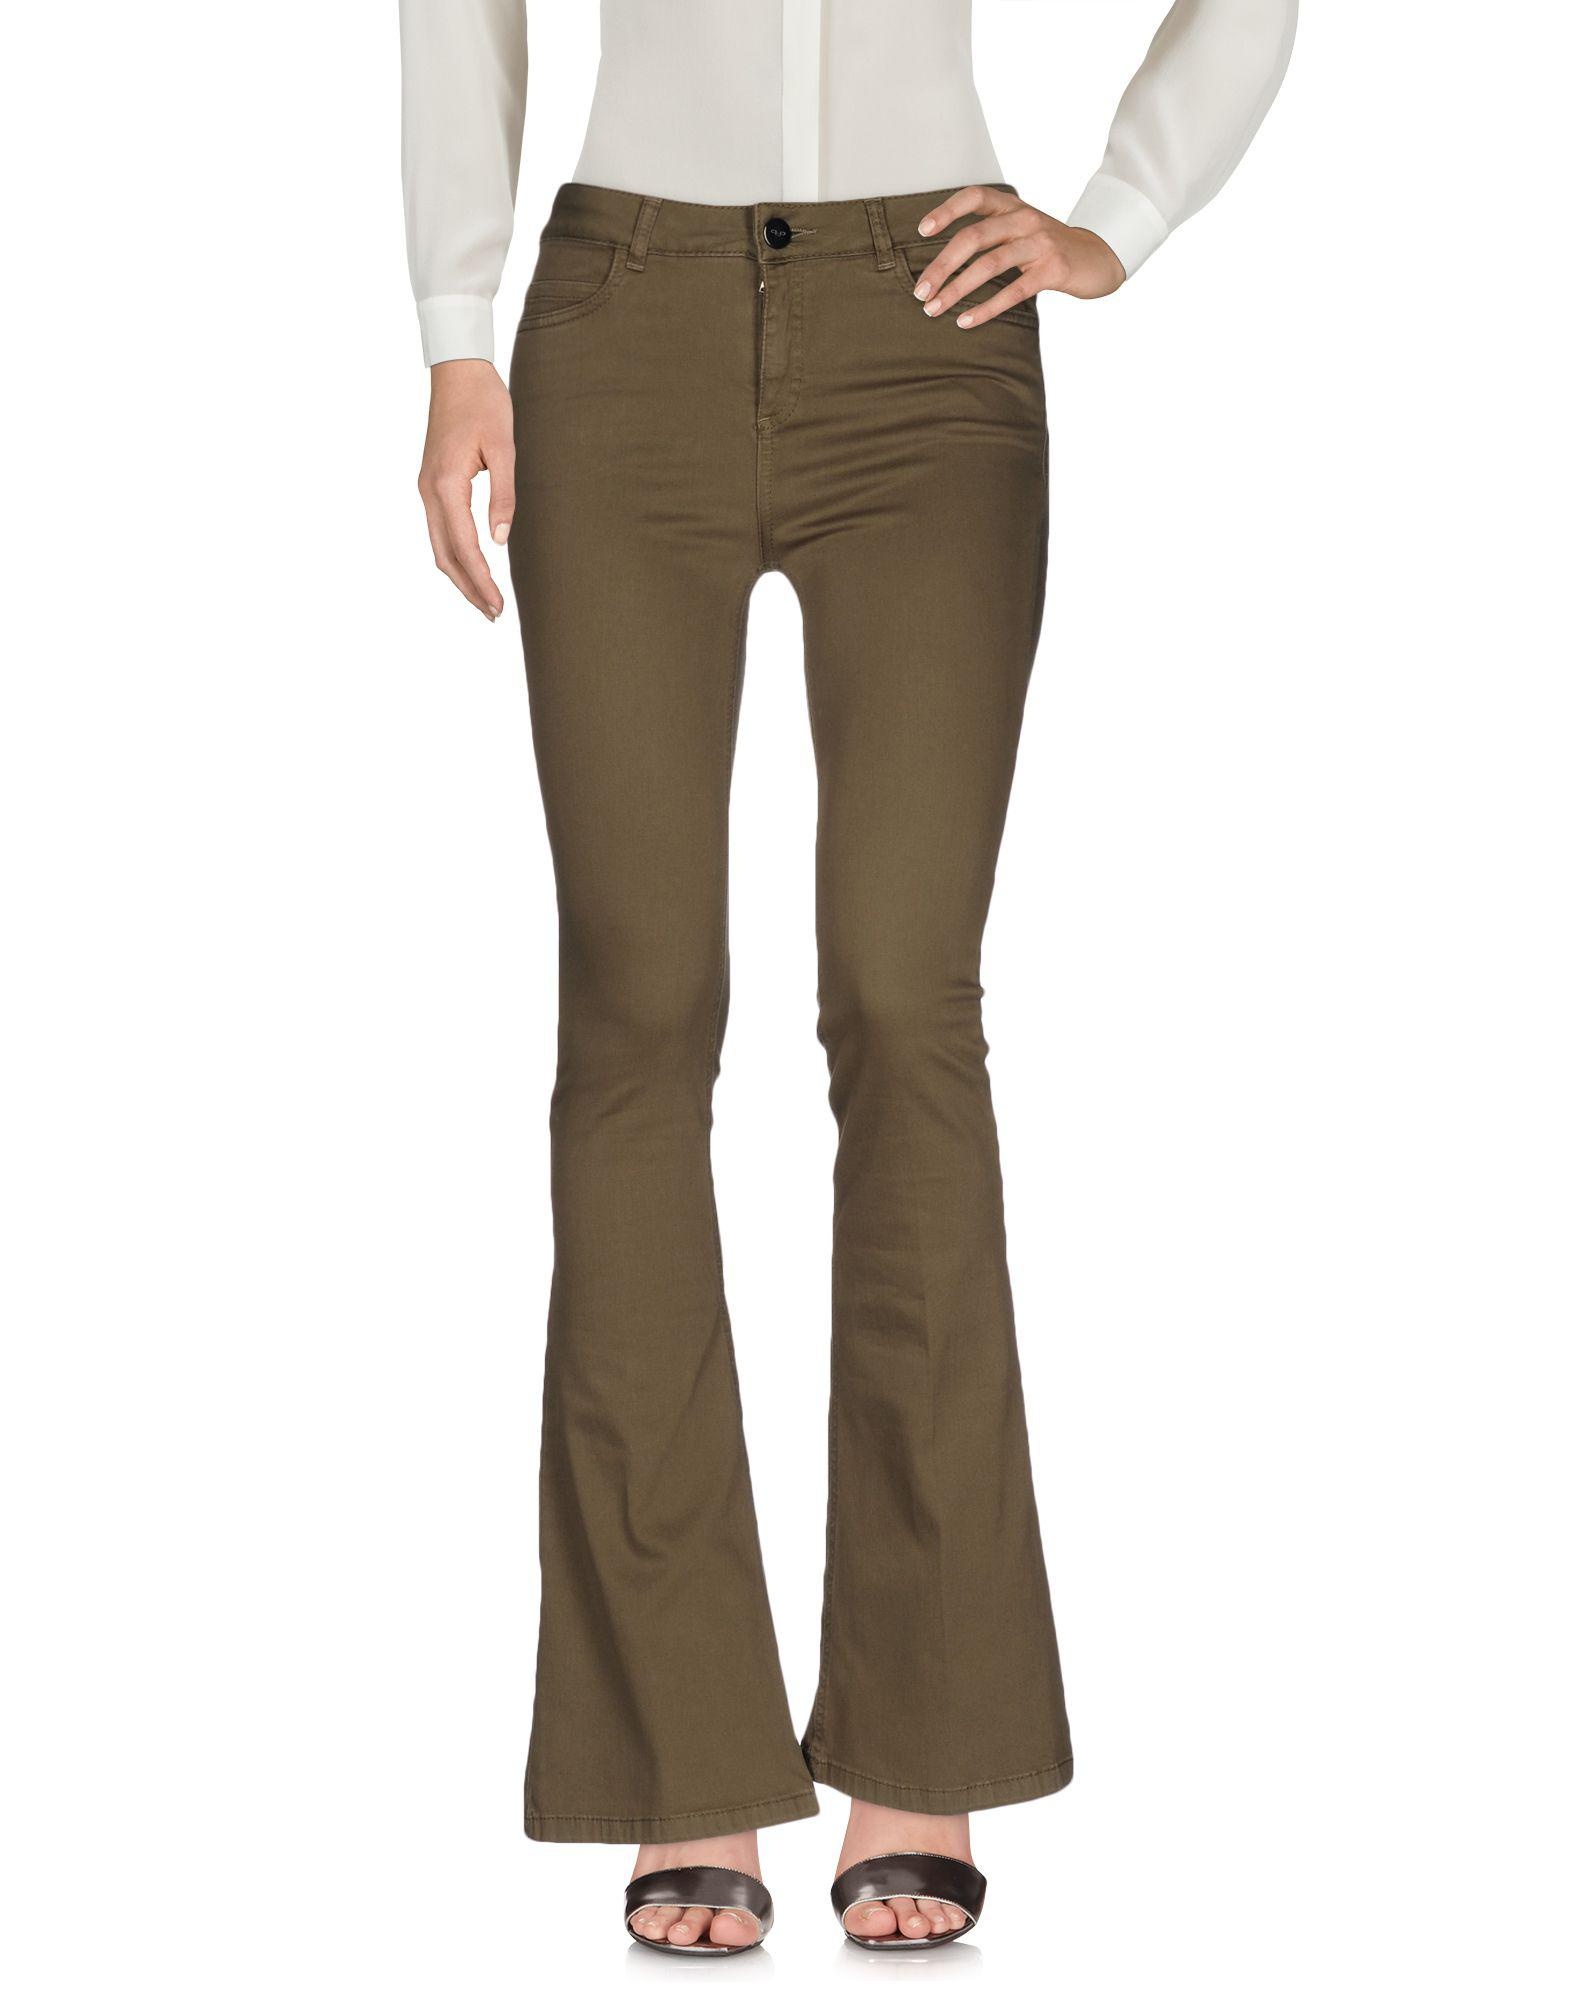 TROUSERS - Casual trousers Hotel Particulier RyctbXCL